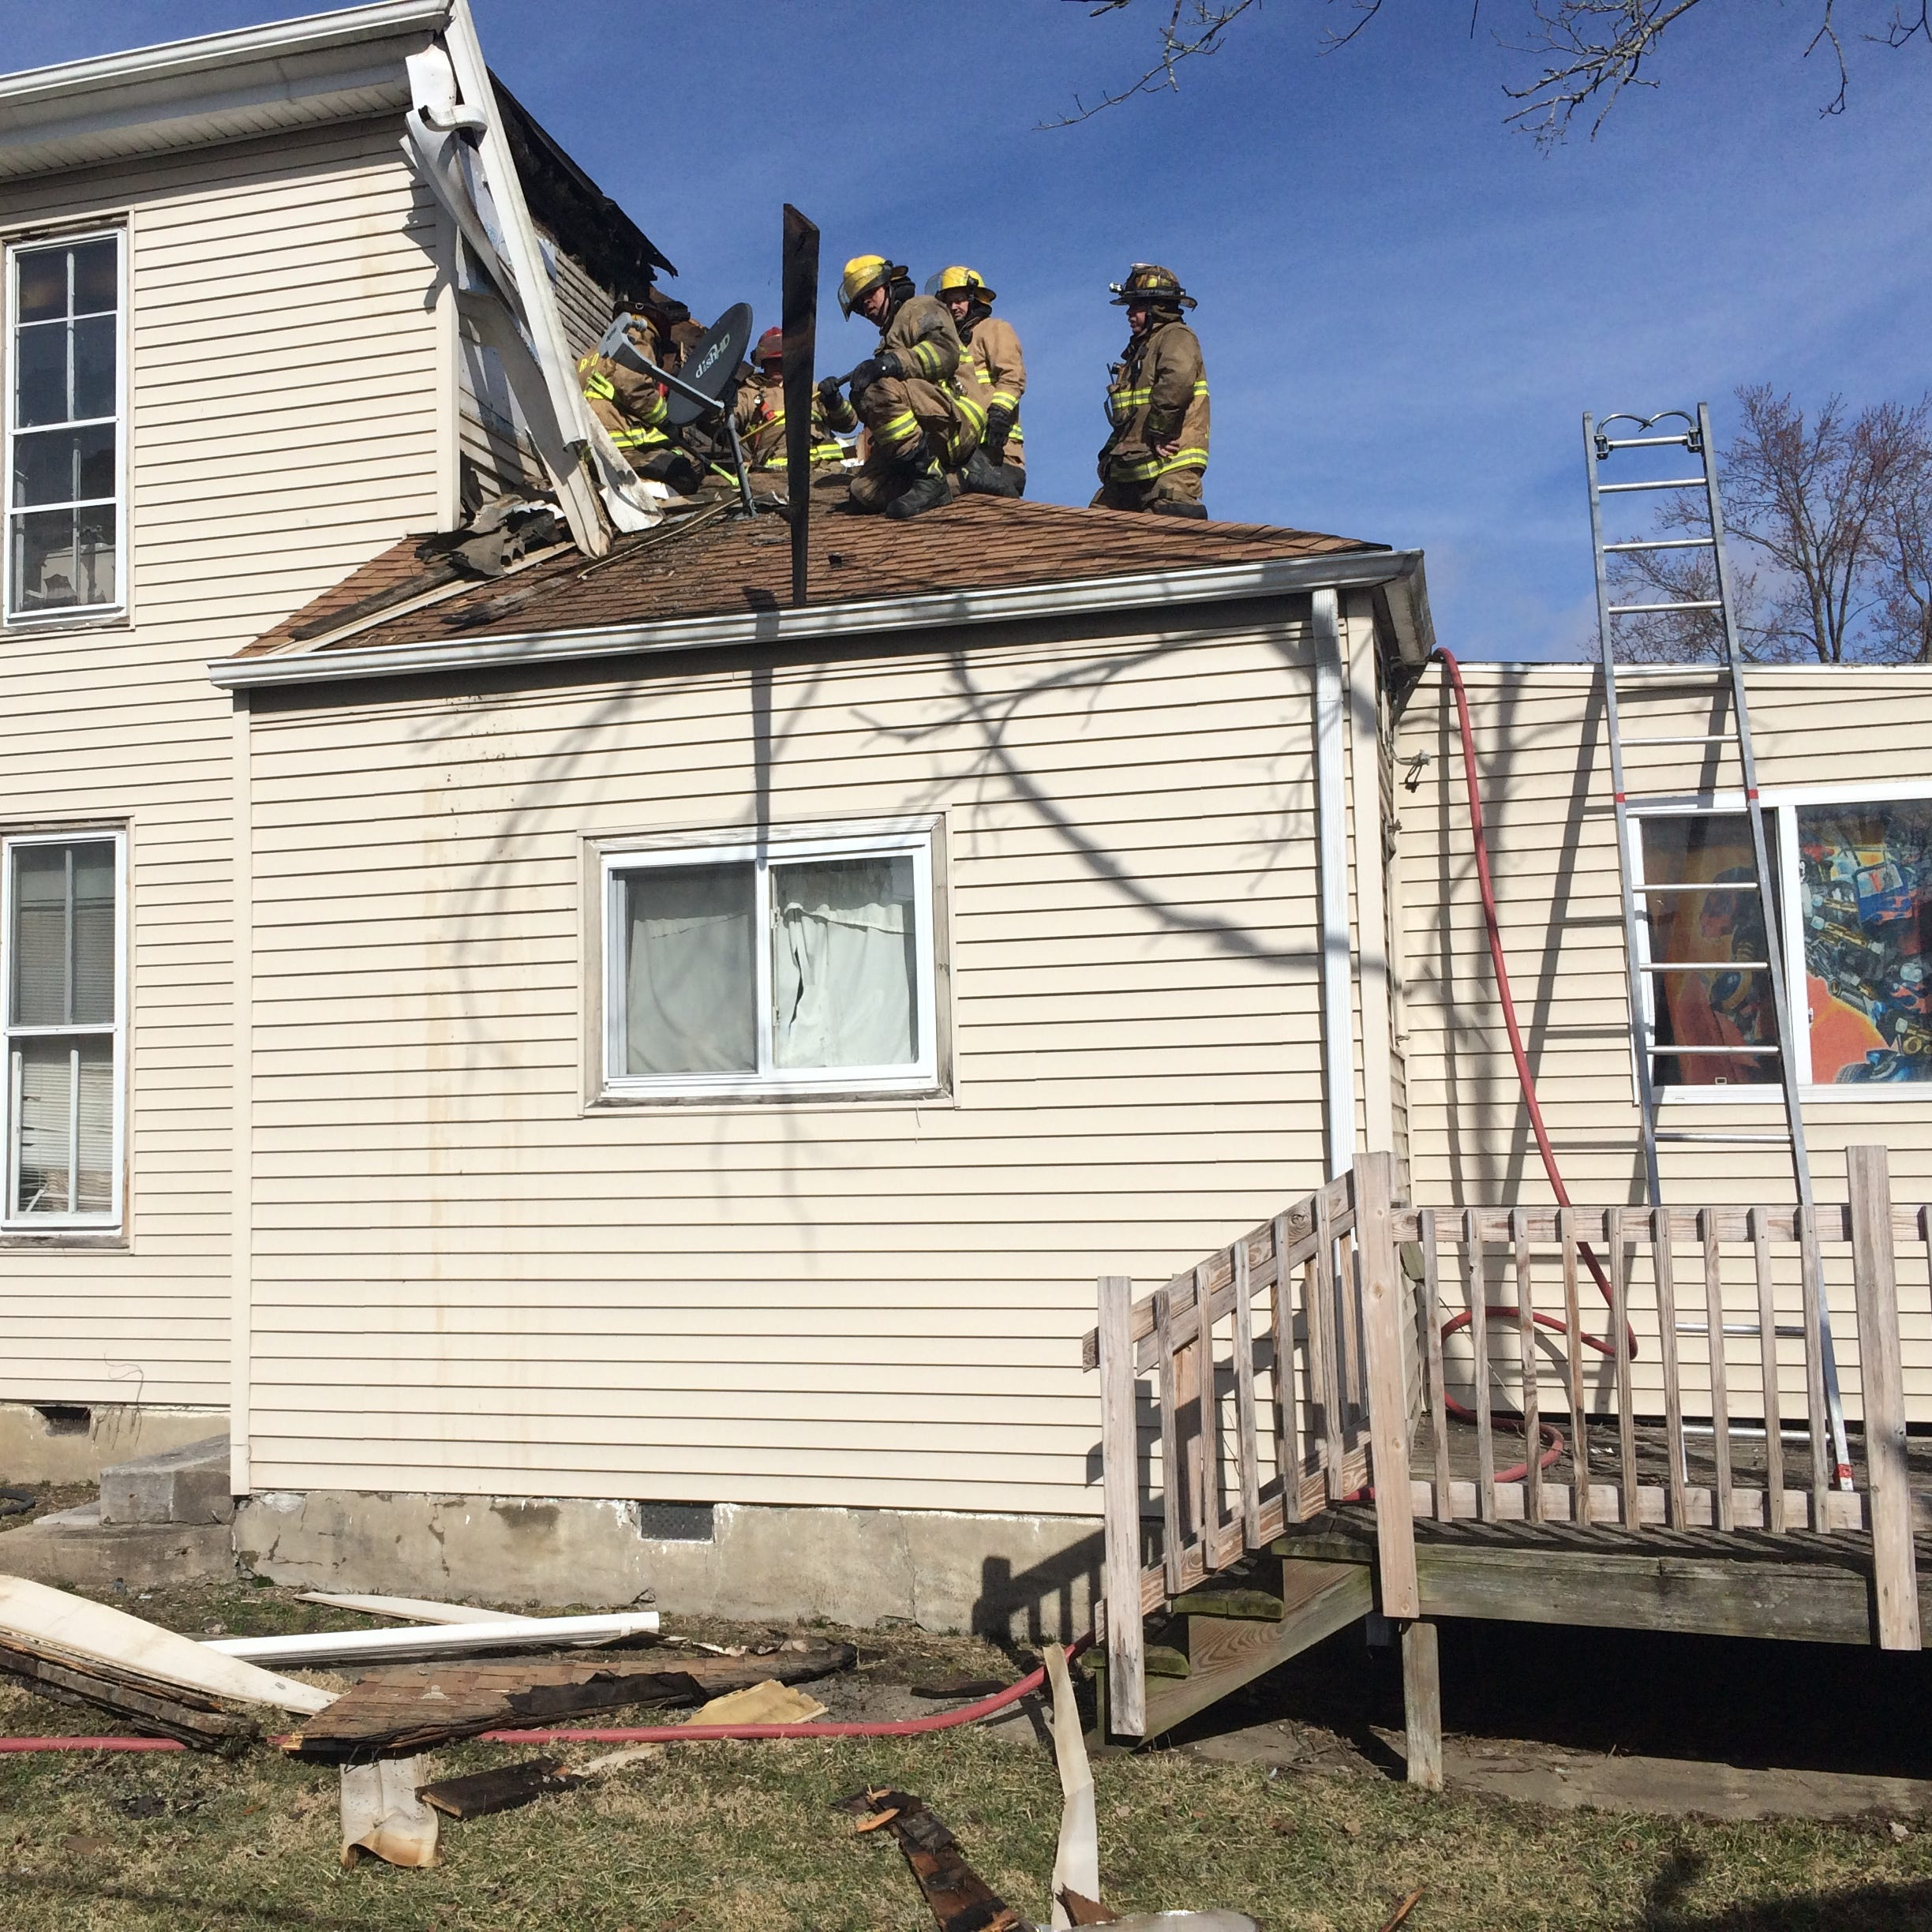 Upstairs apartment damaged by fire that started on back porch